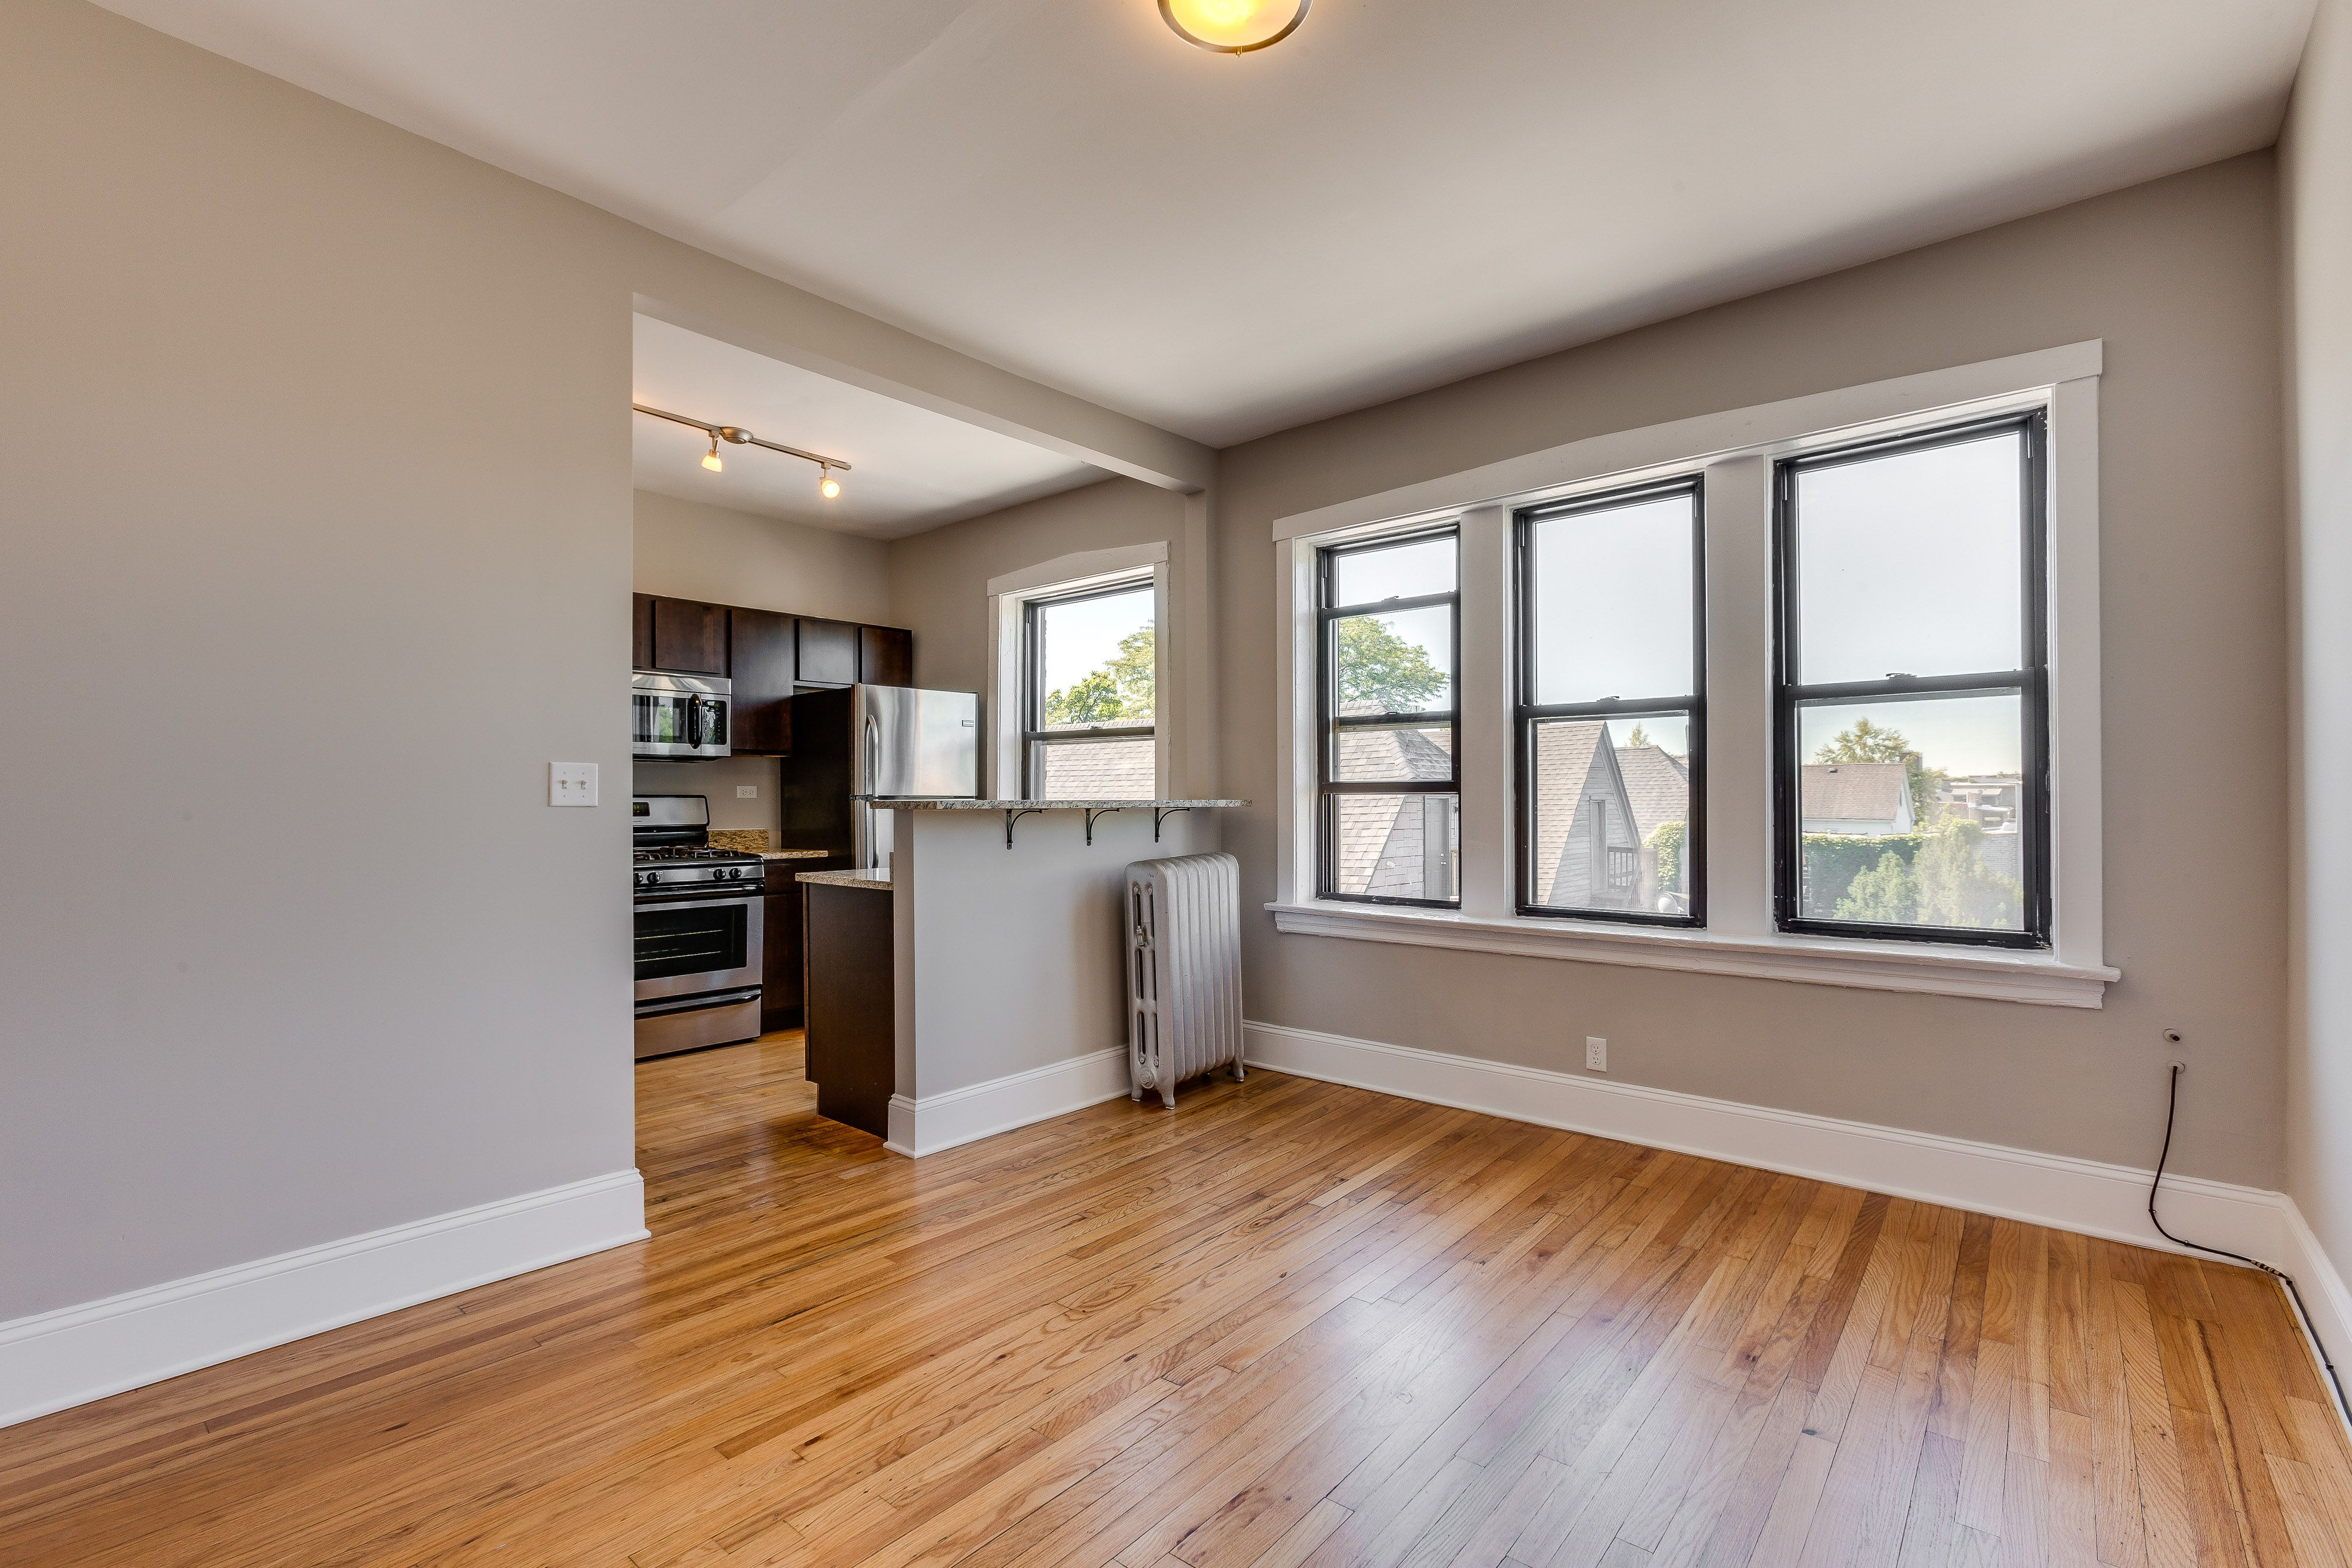 Renovated Apartment In Logan Square Chicago With Hardwood Floors Natural Light Crown Molding Modern Apartment Apartment Interior Design Rustic Kitchen Design